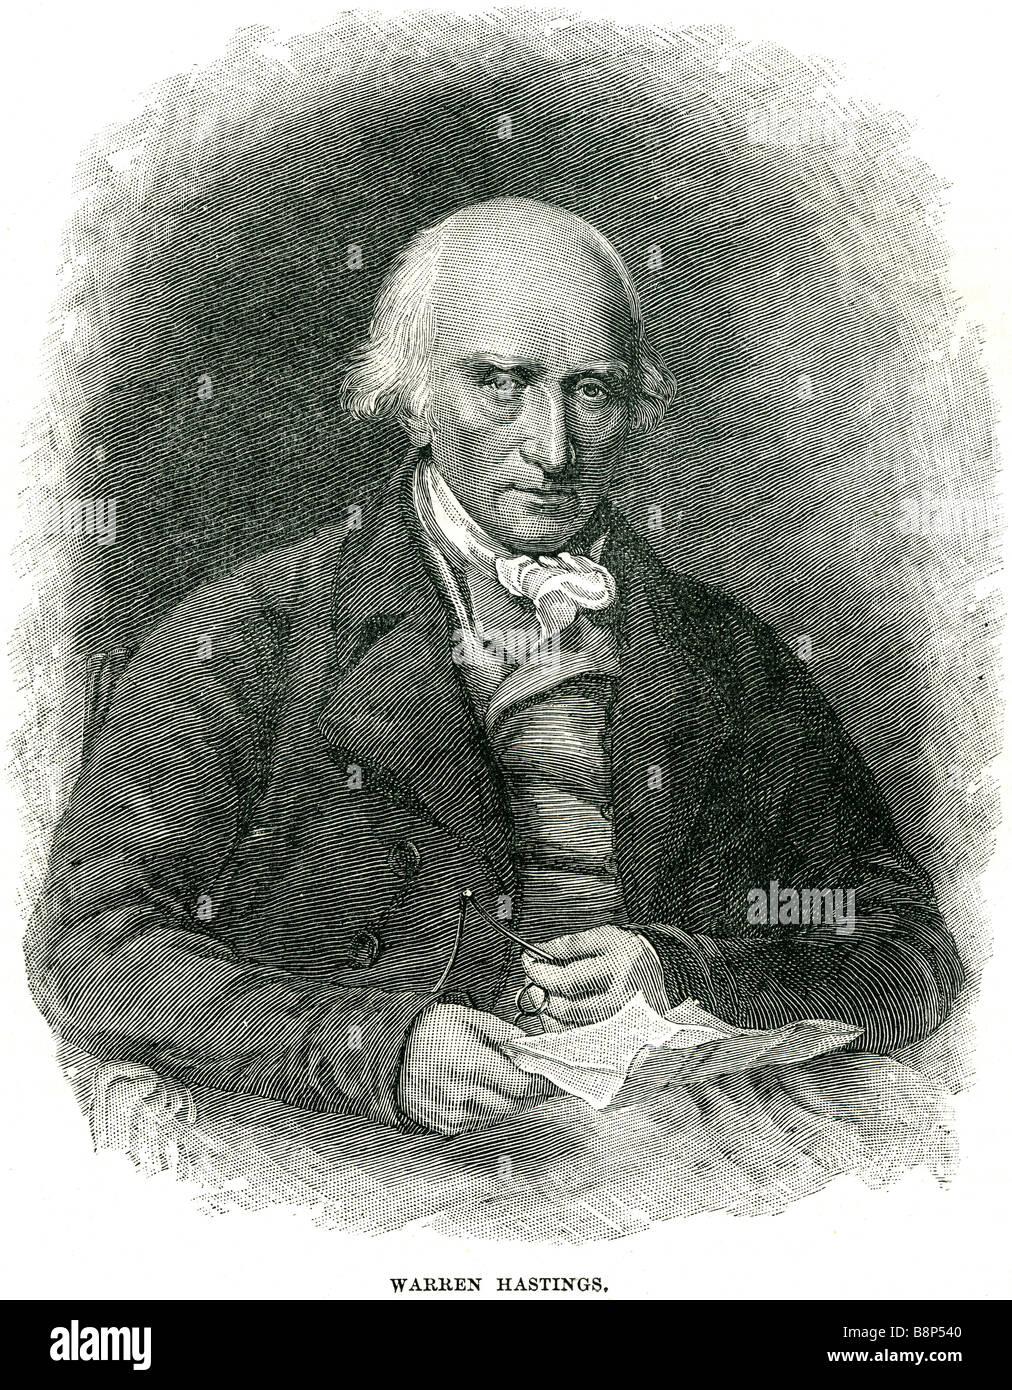 warren hastings 6 December 1732 - 22 August 1818 first Governor-General of Bengal Privy Councillor - Stock Image